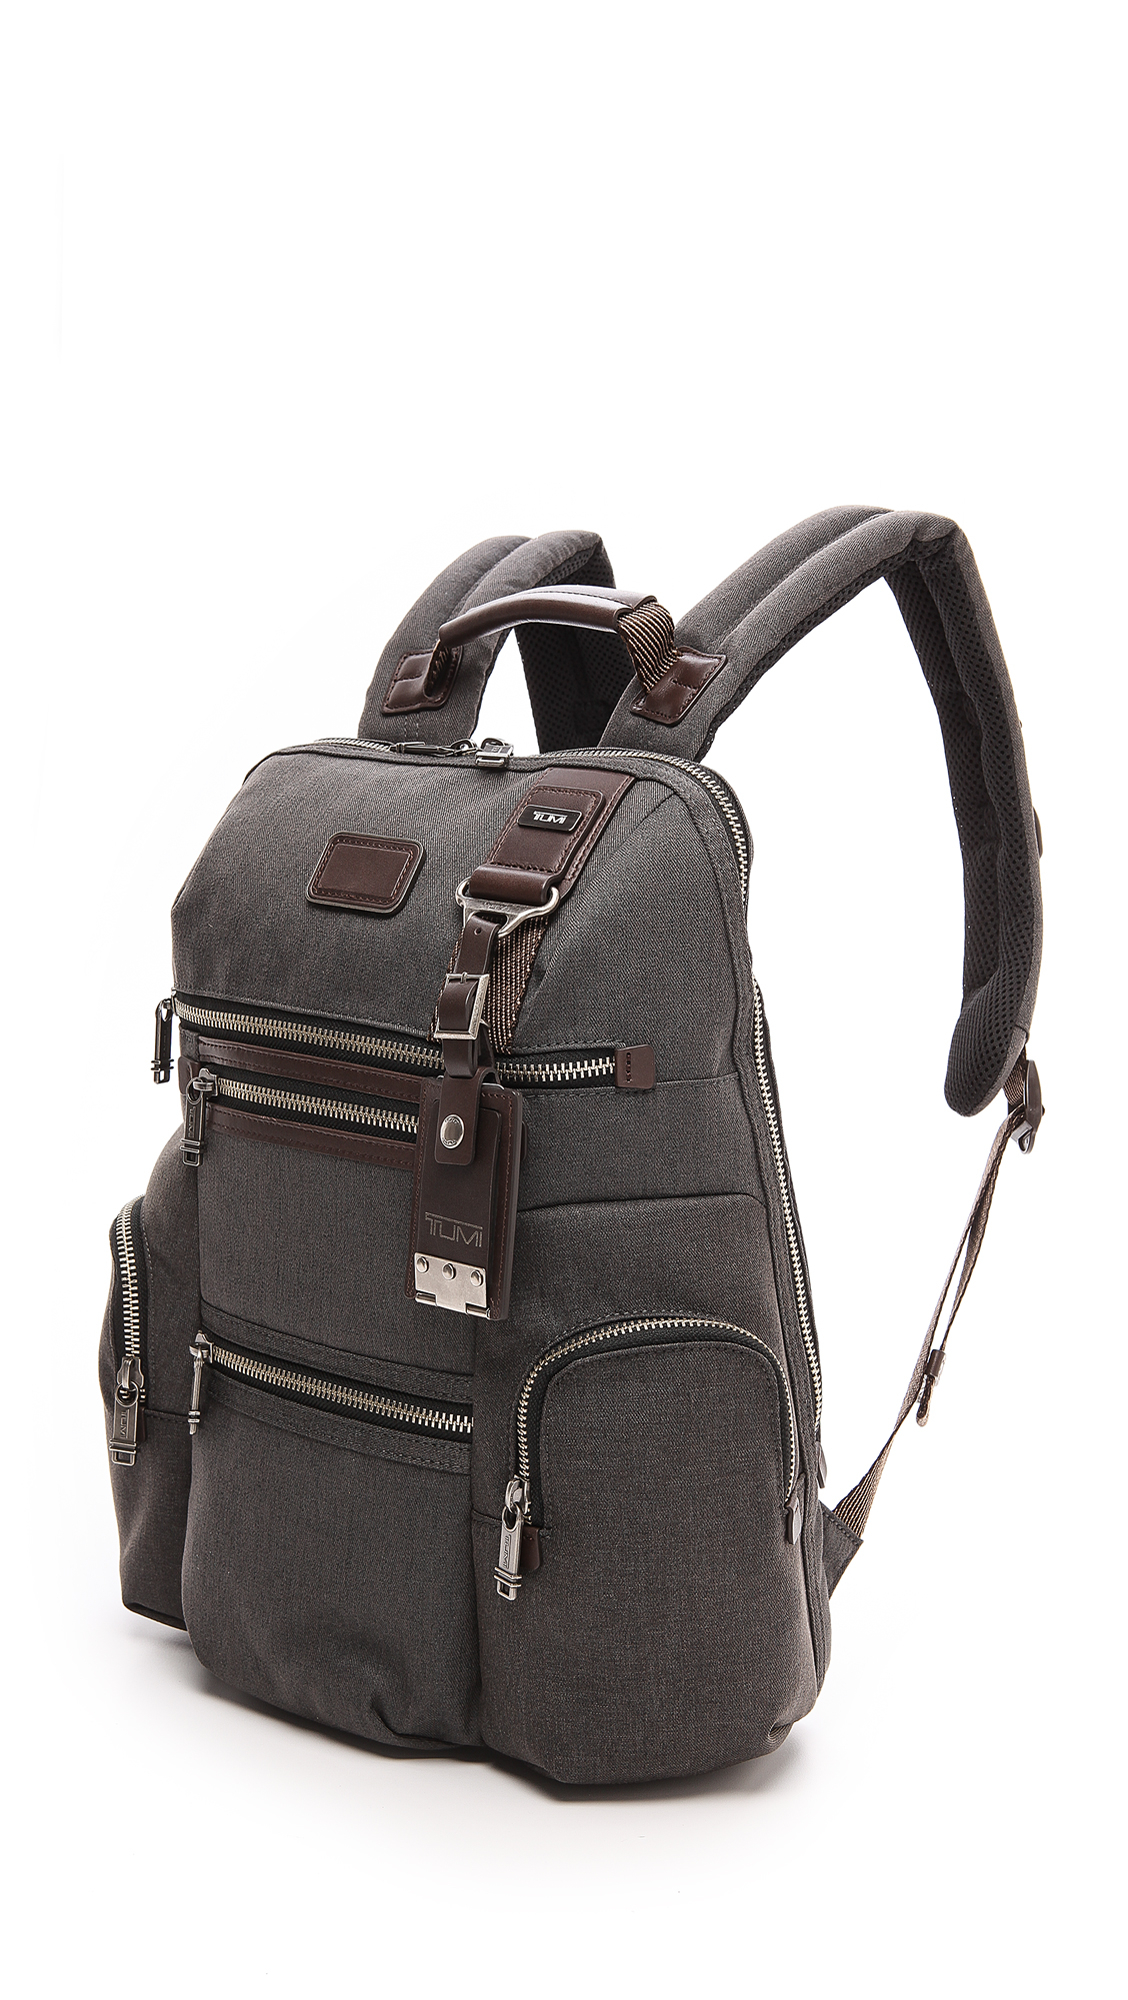 Tumi Alpha Bravo Knox Backpack in Anthracite (Grey) for Men